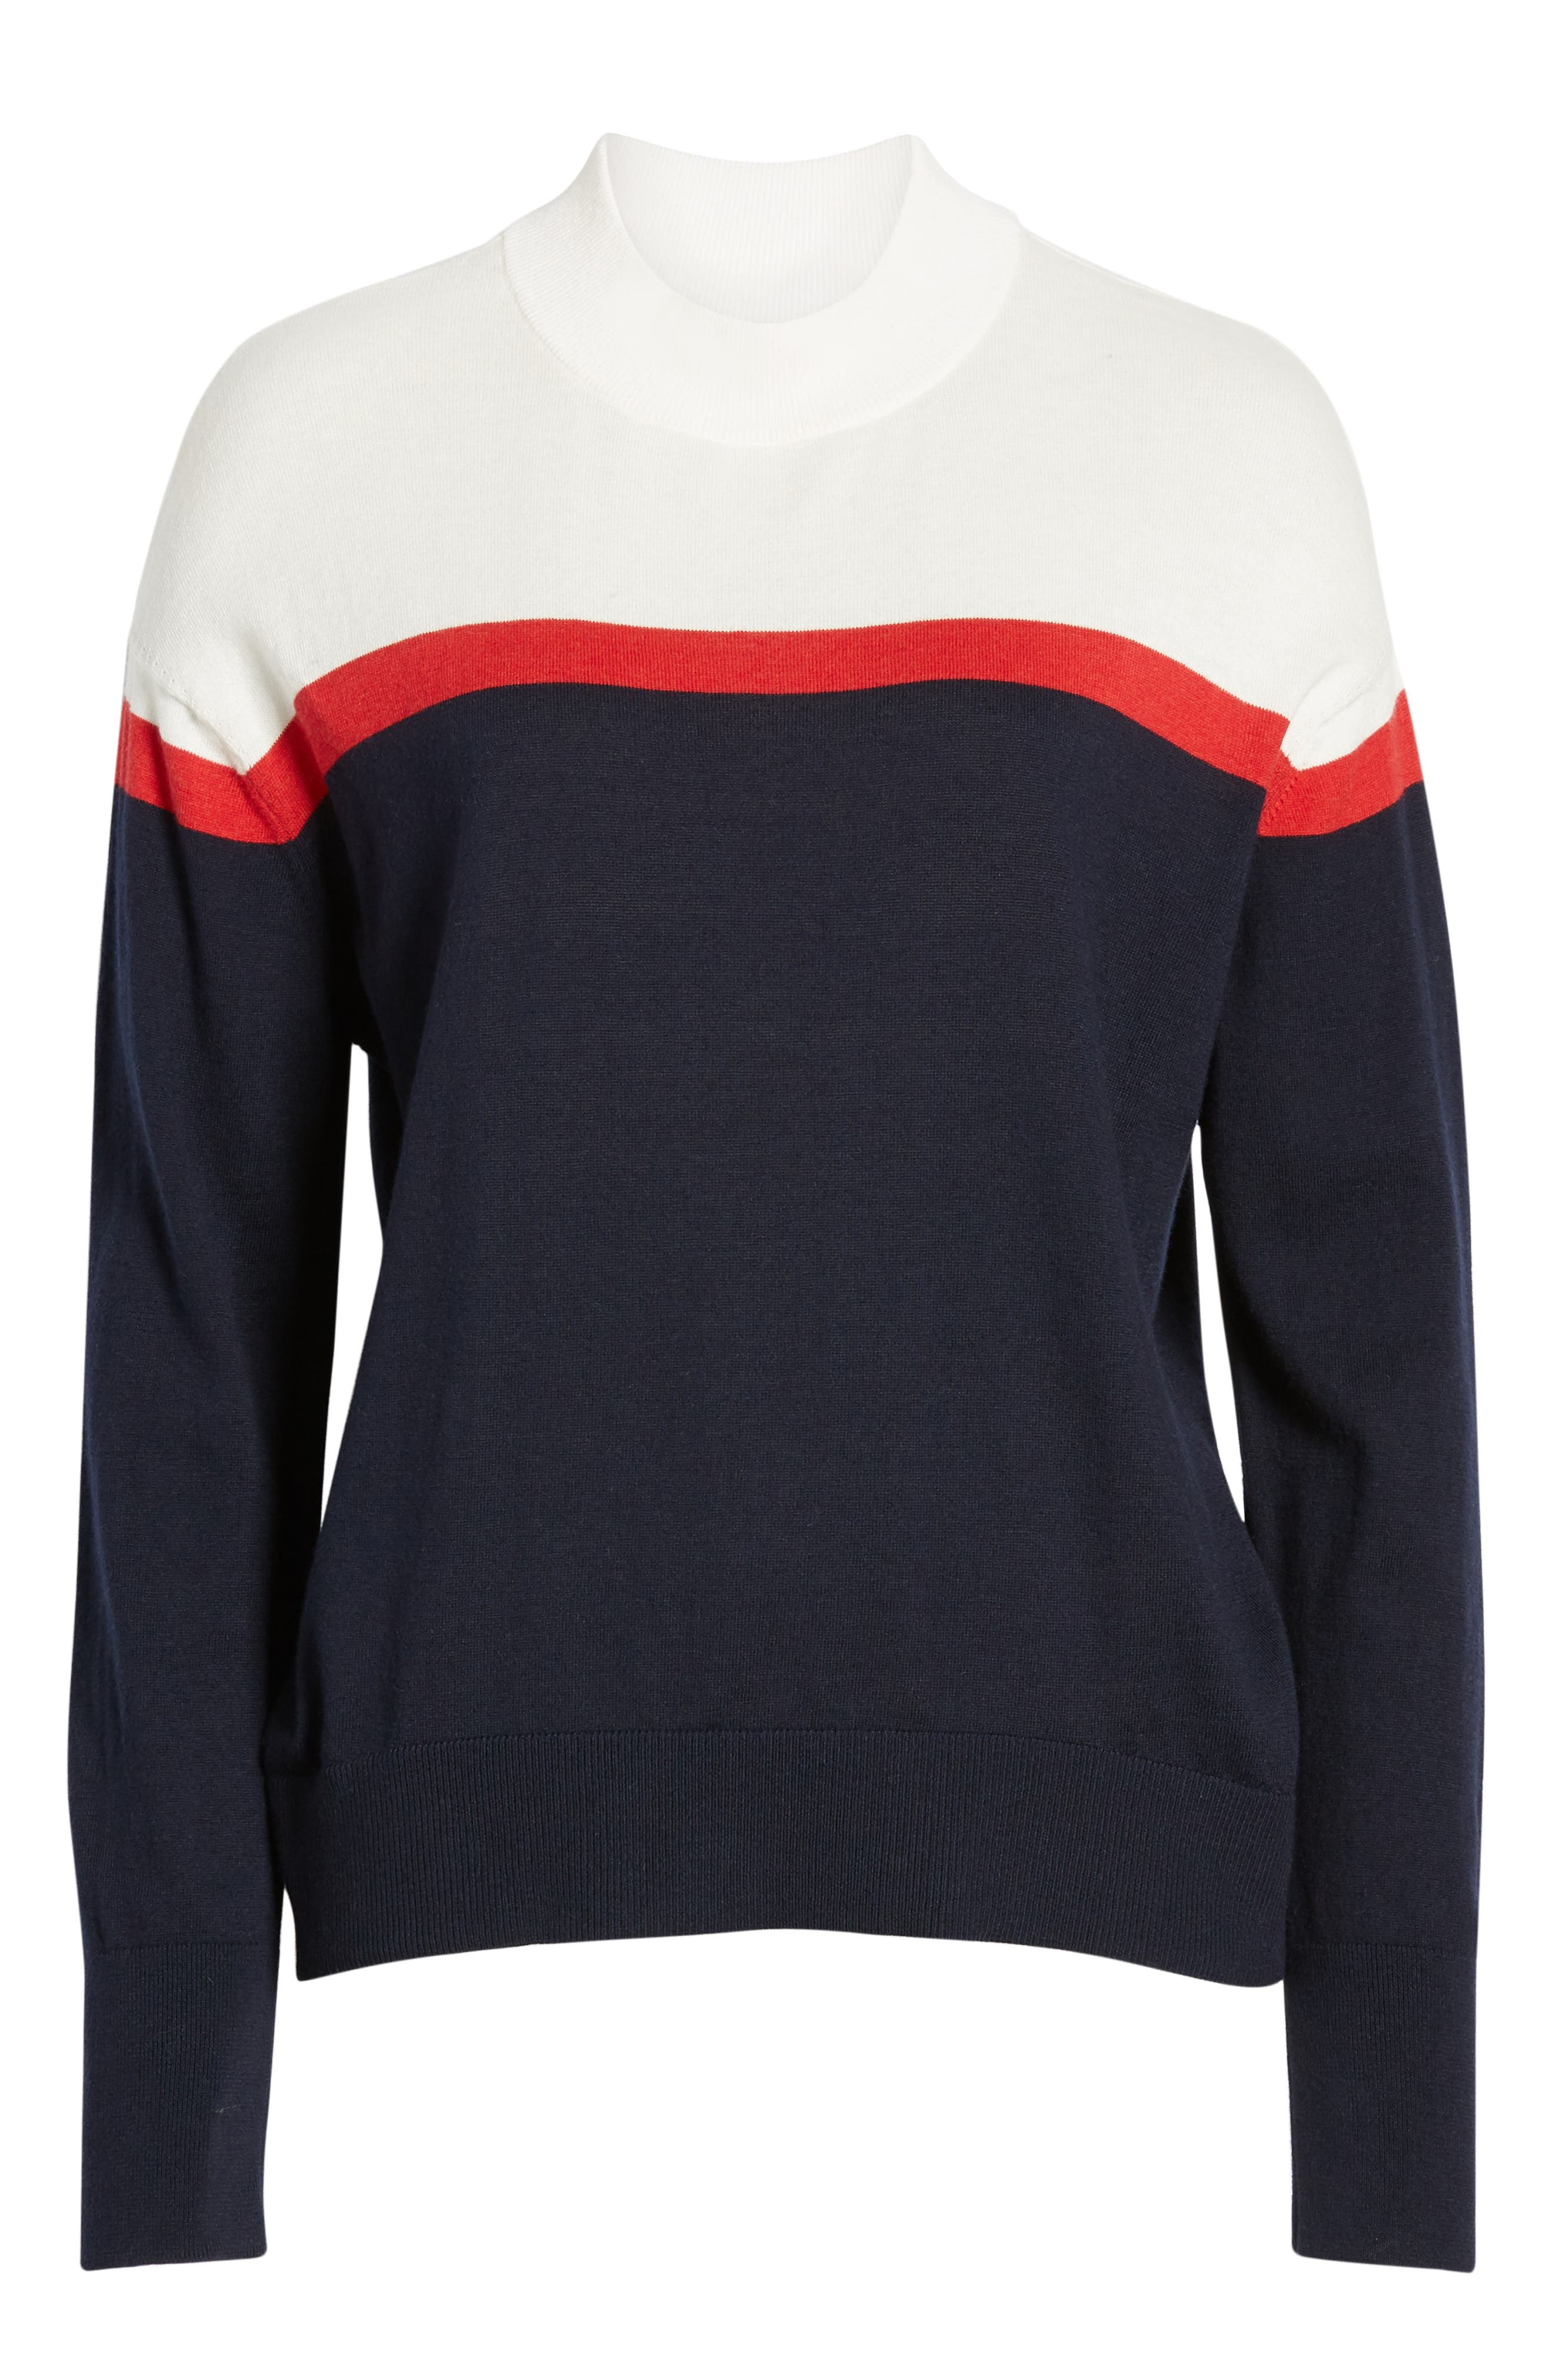 VELVET BY GRAHAM & SPENCER, Stripe Mock Neck Cotton & Cashmere Sweater, Alternate thumbnail 6, color, MULTI